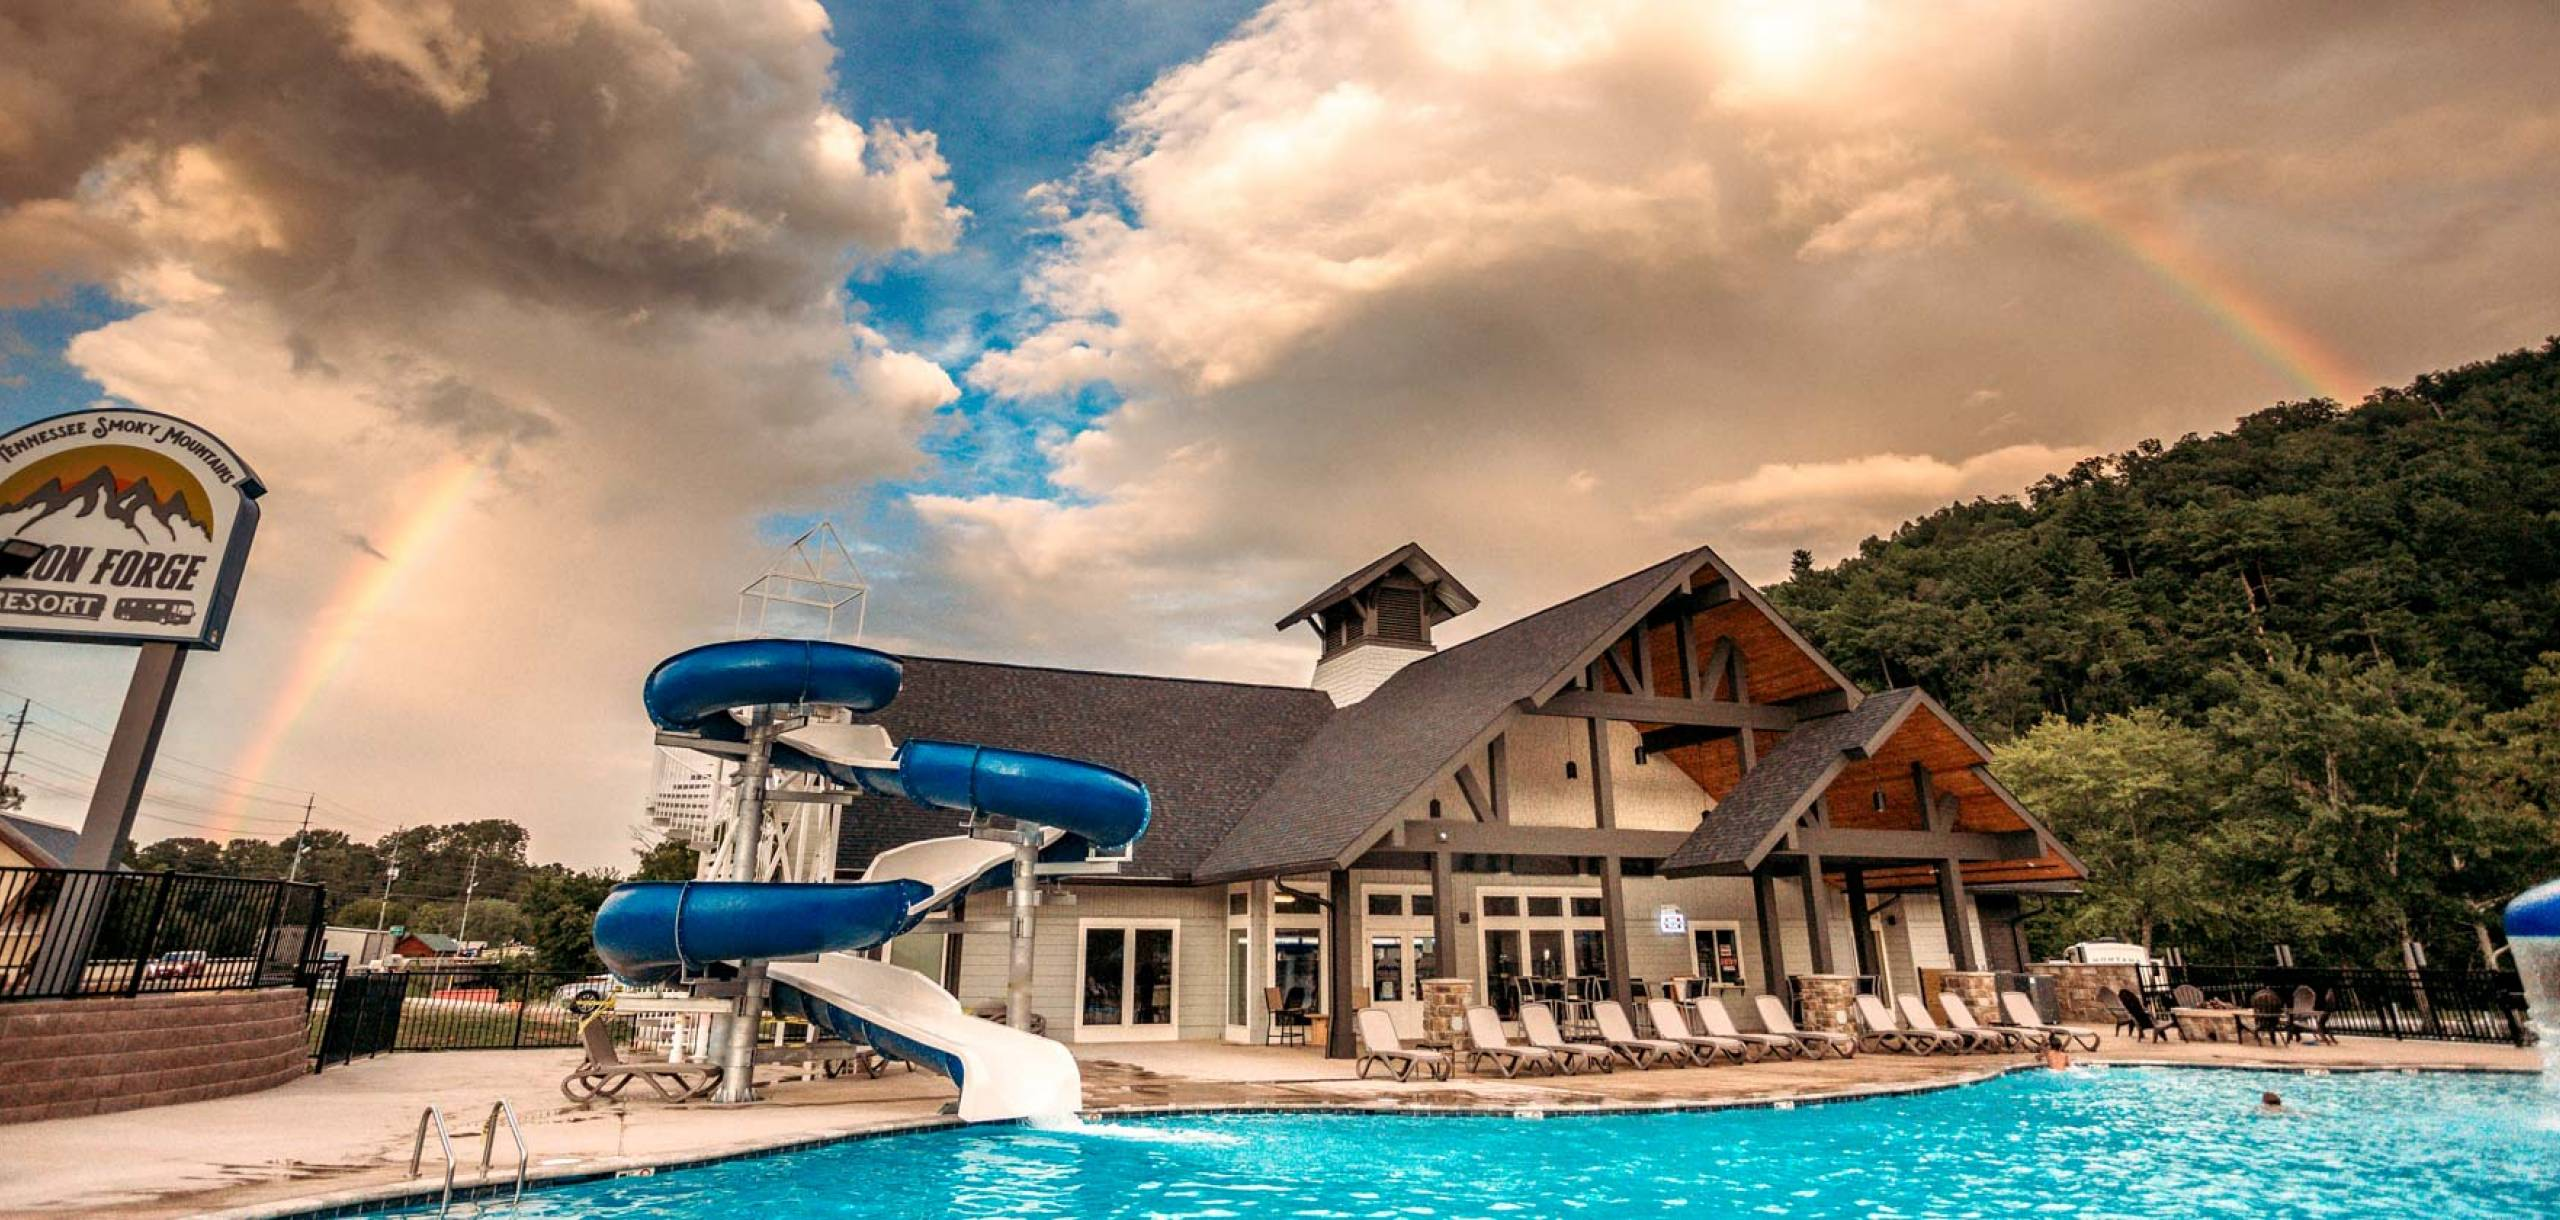 Pigeon Forge RV Resort Pool and Slide with Rainbow.